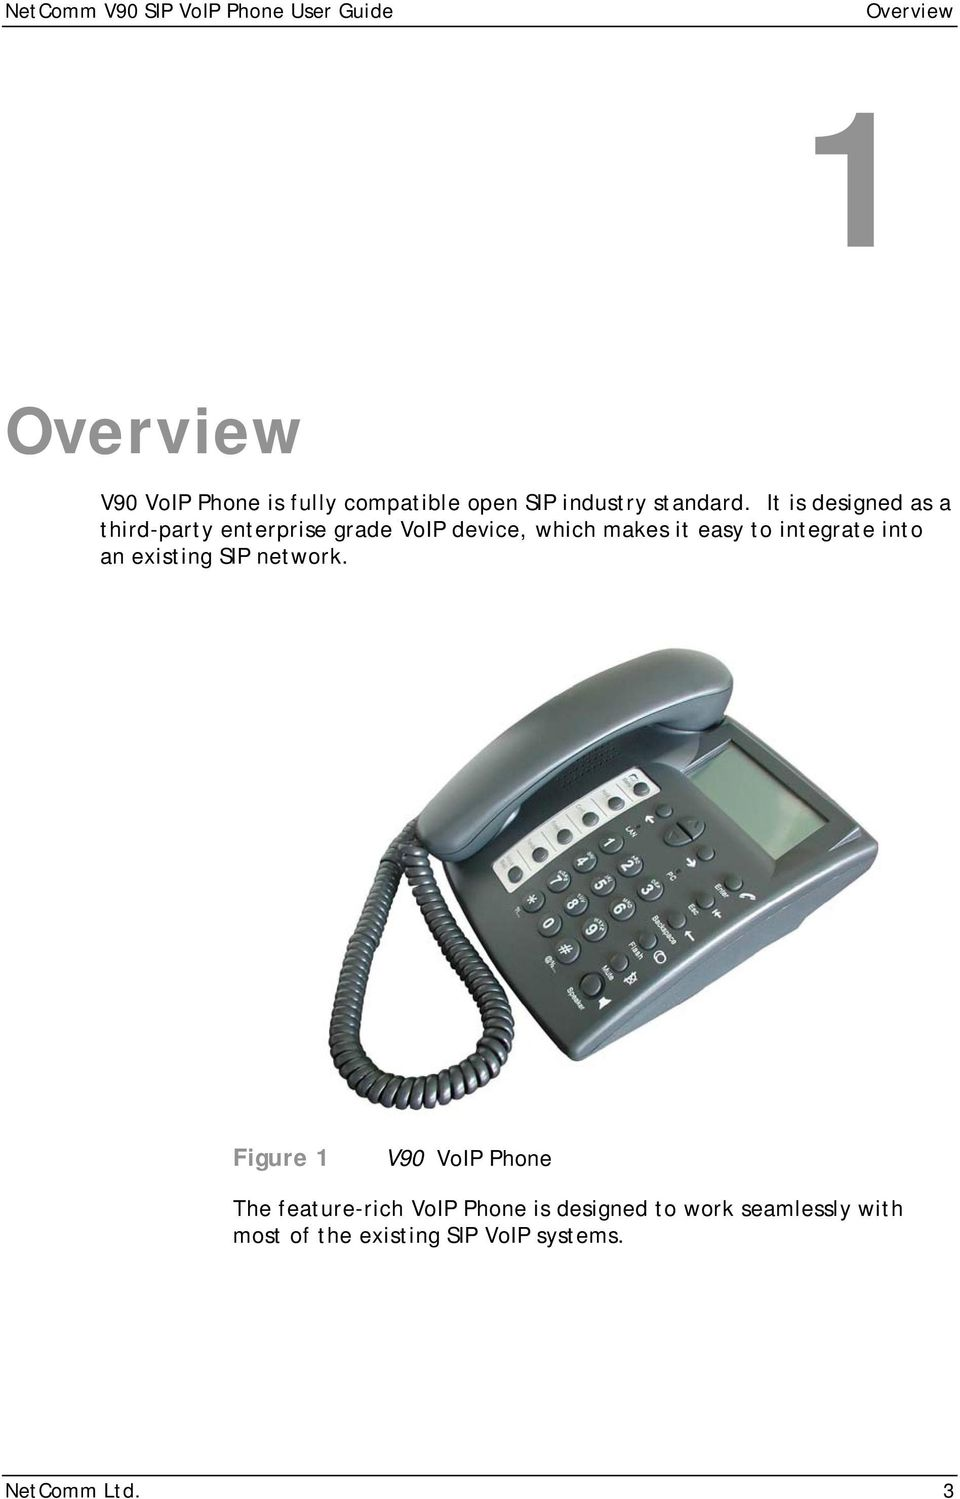 It is designed as a third-party enterprise grade VoIP device, which makes it easy to integrate